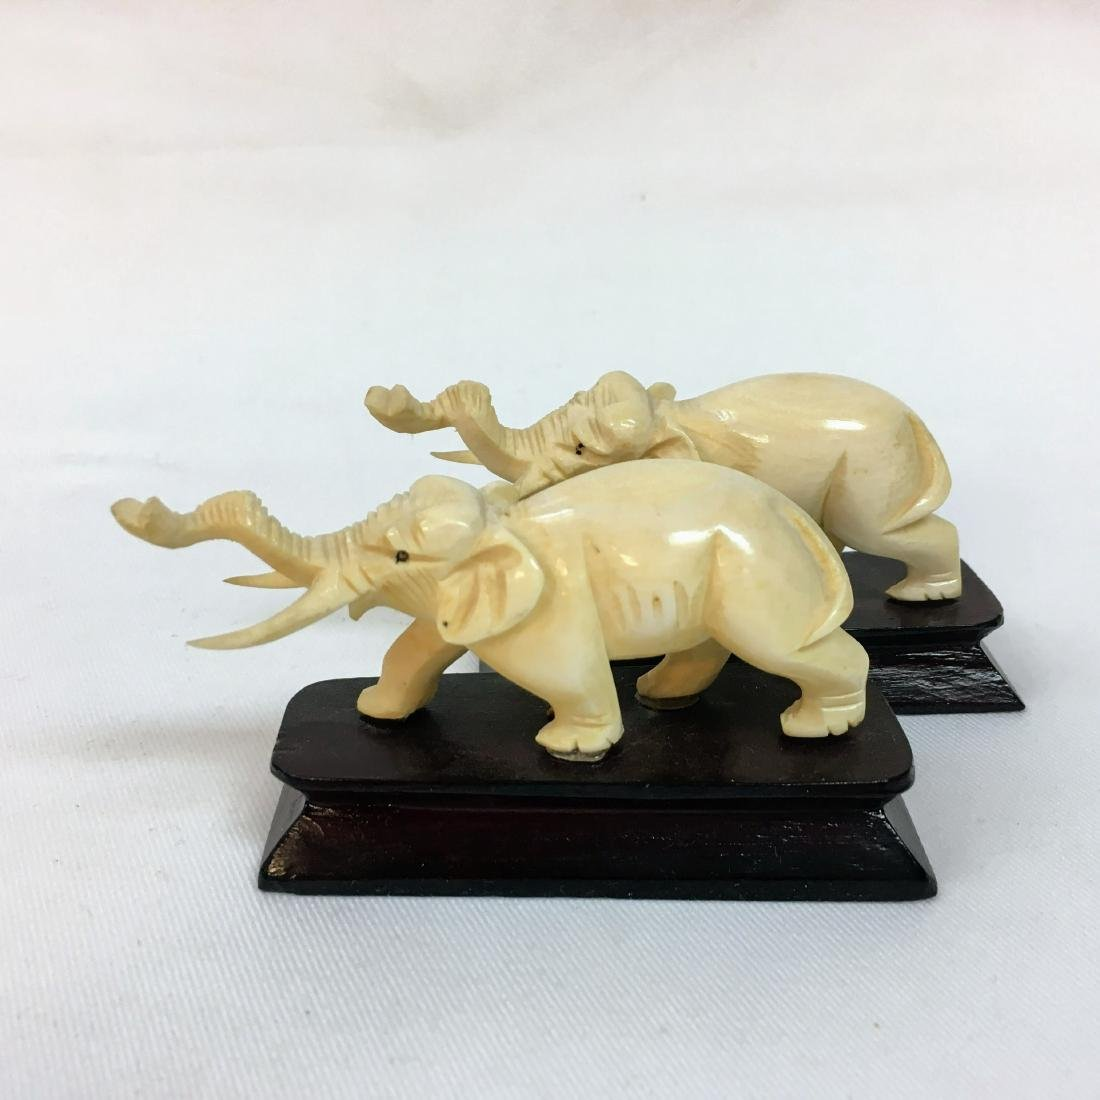 Vintage pair of Hand carved elephants on bases - 5